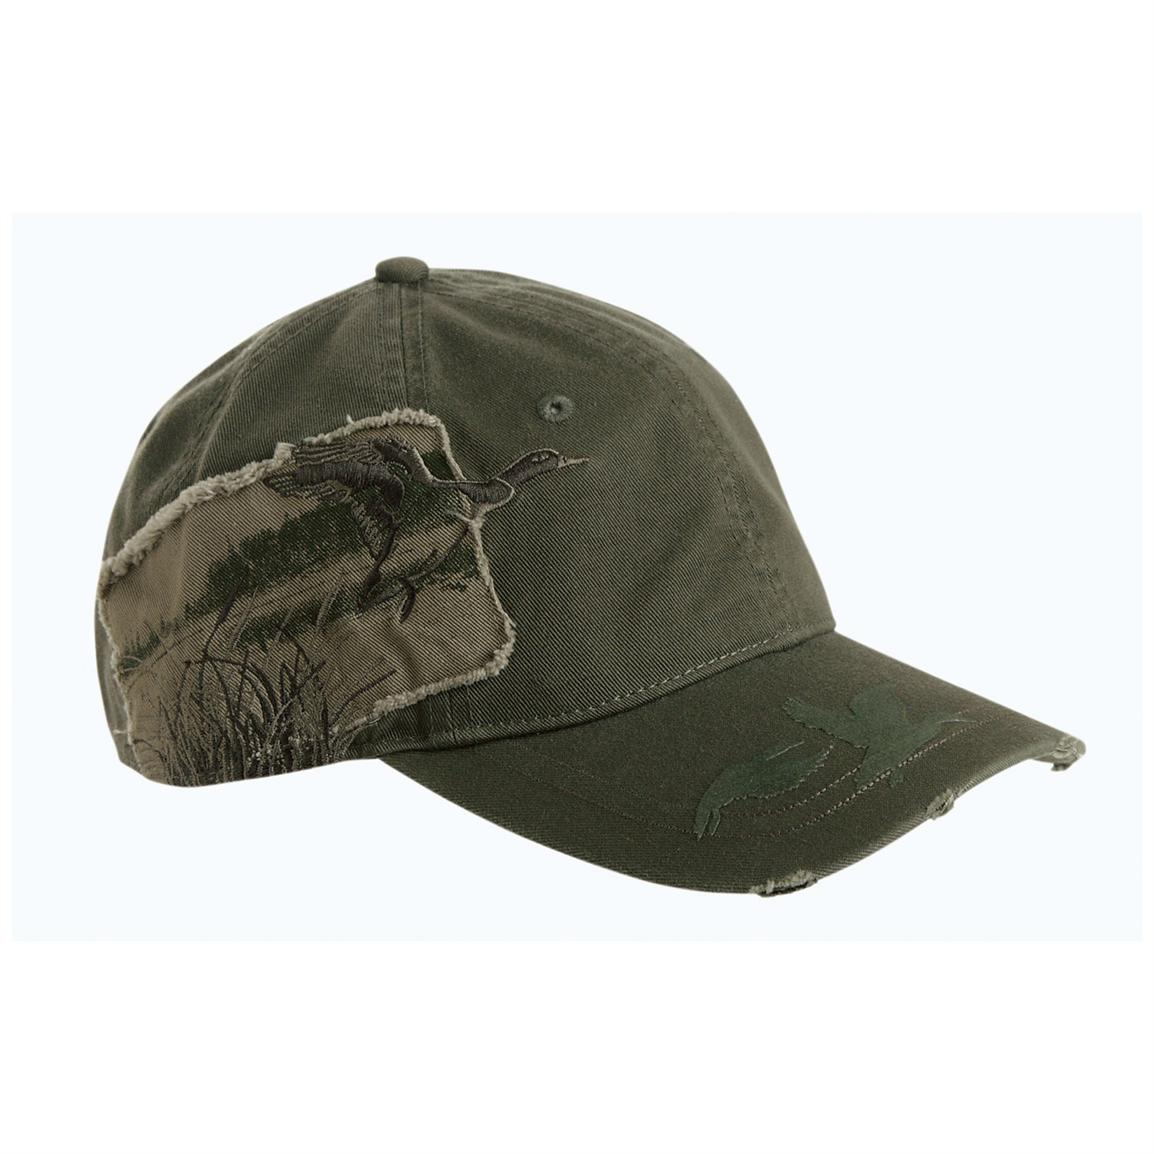 DRI DUCK Appliqué Mallard Wildlife Cap